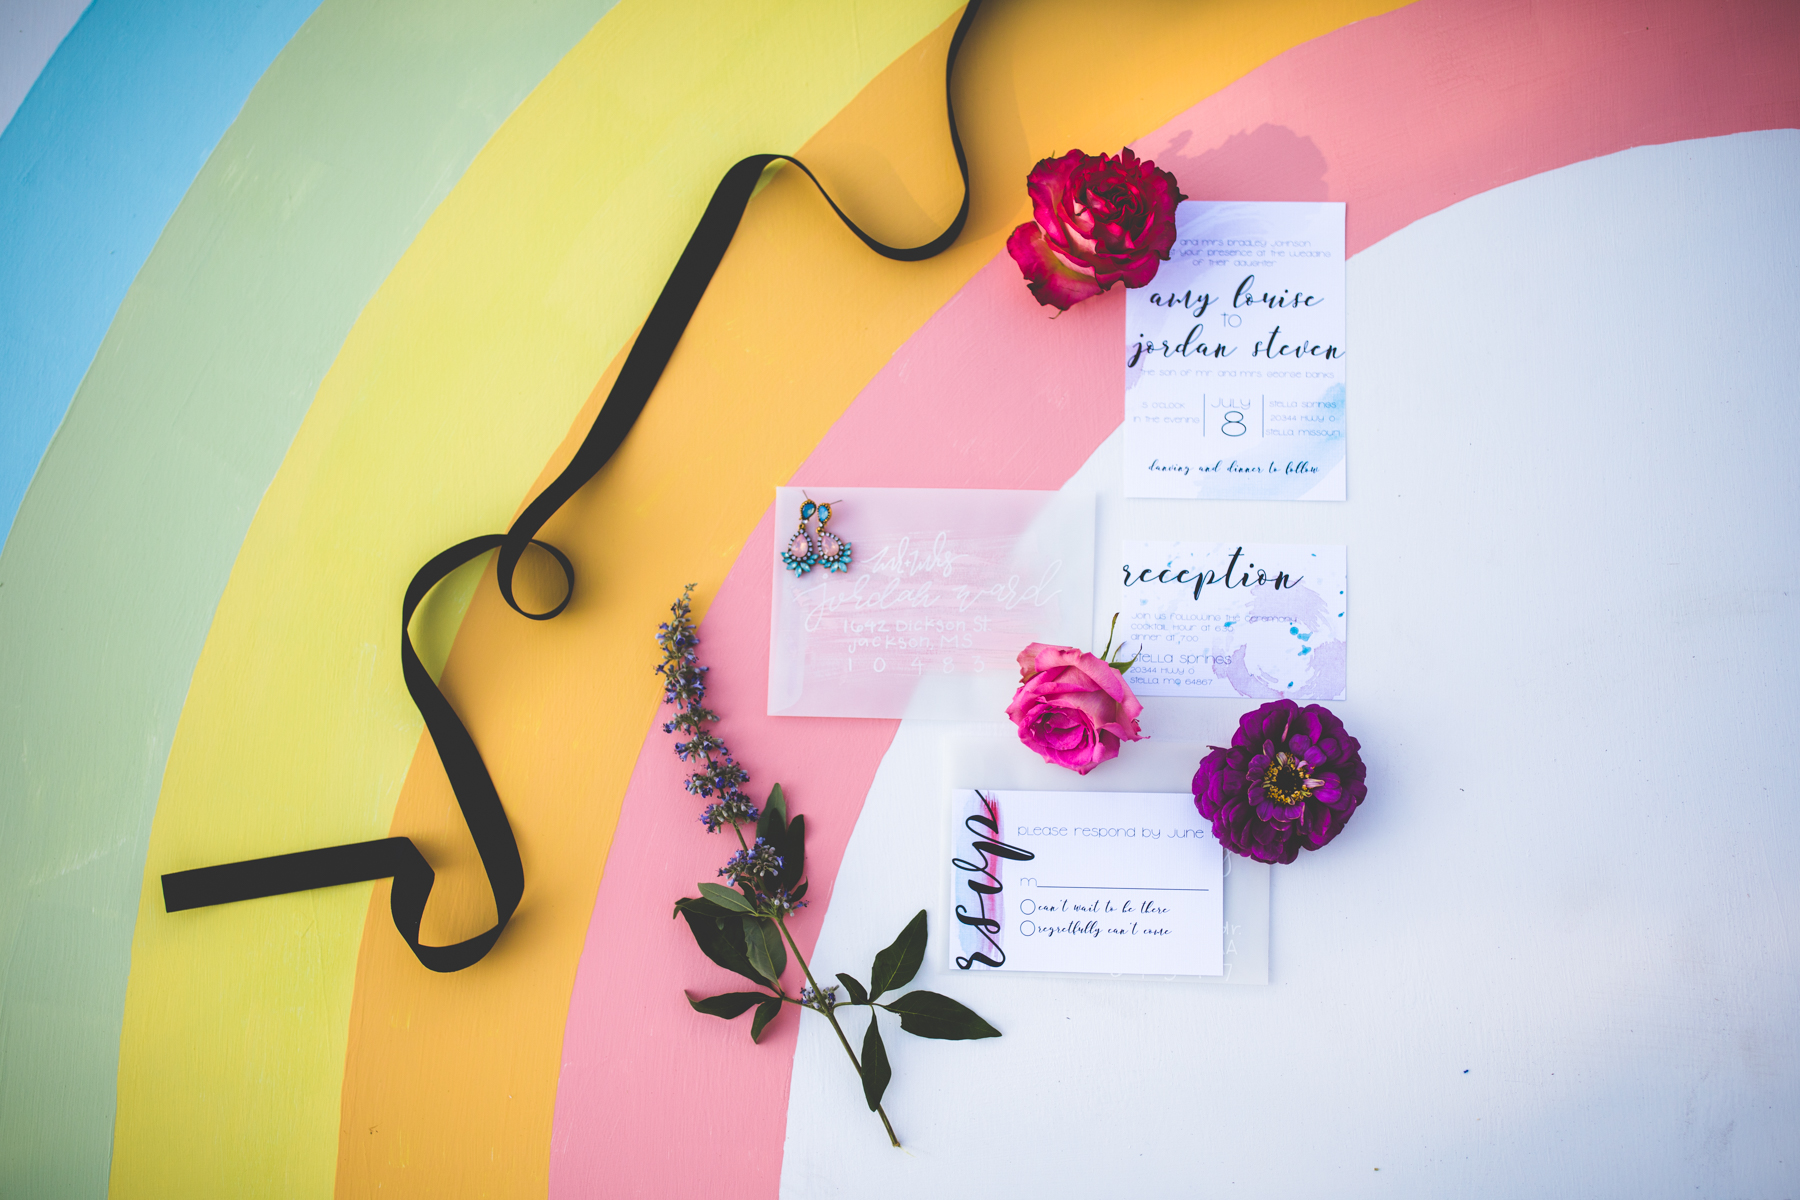 Watercolor wedding invitations set up on rainbow backdrop